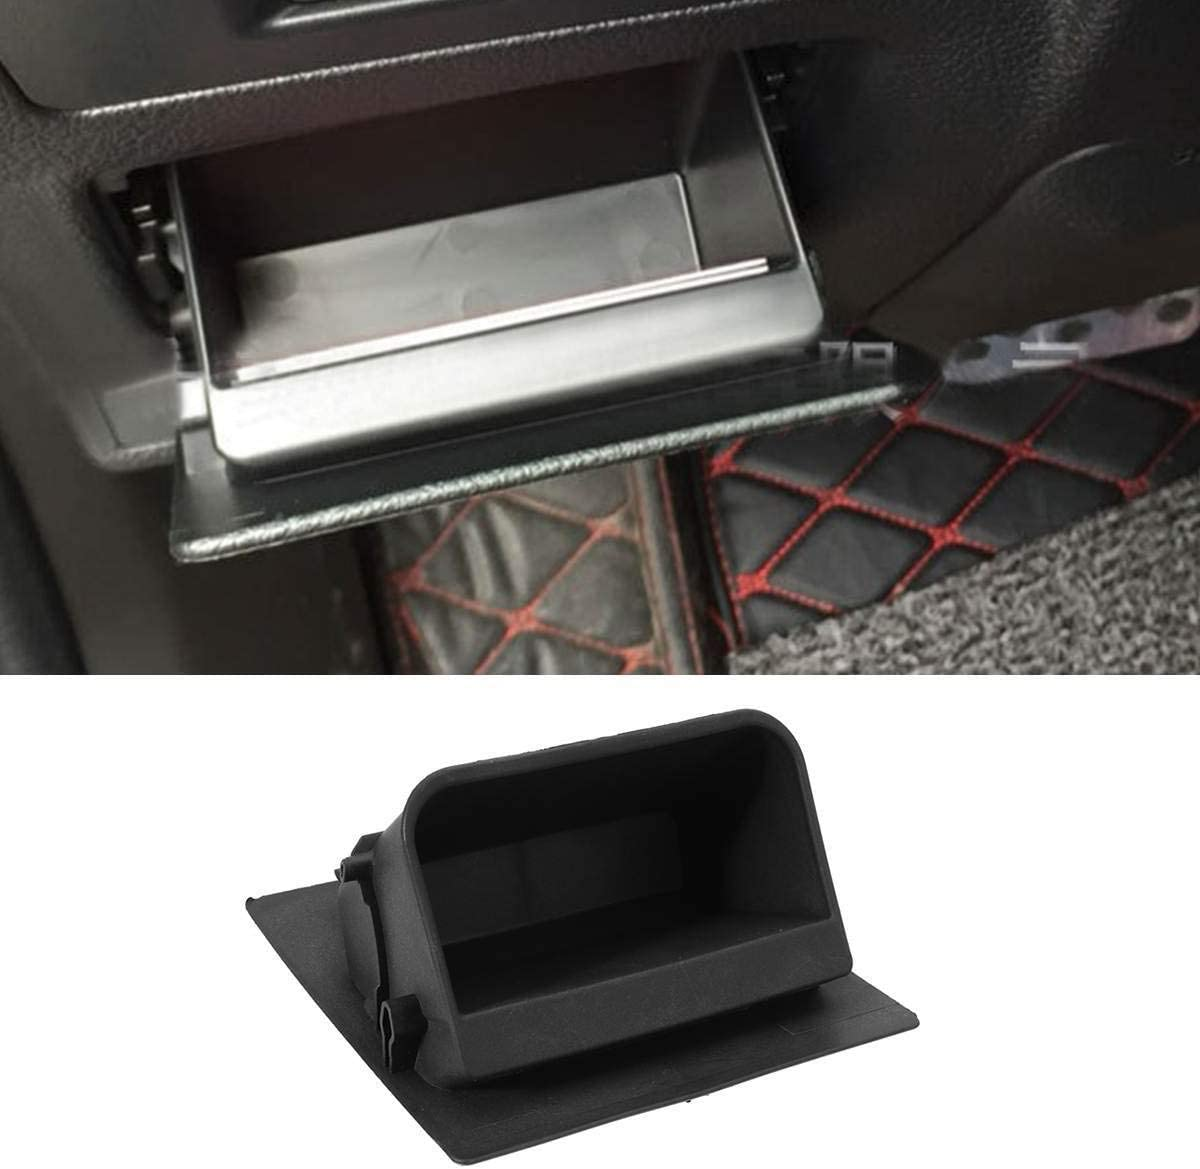 Center Console Cover LHD Car Fuse Box Armrest Storage Box Coin Cards Box Tray Holder Fit for Subaru XV Forester Impreza Outback Legacy WRX STi